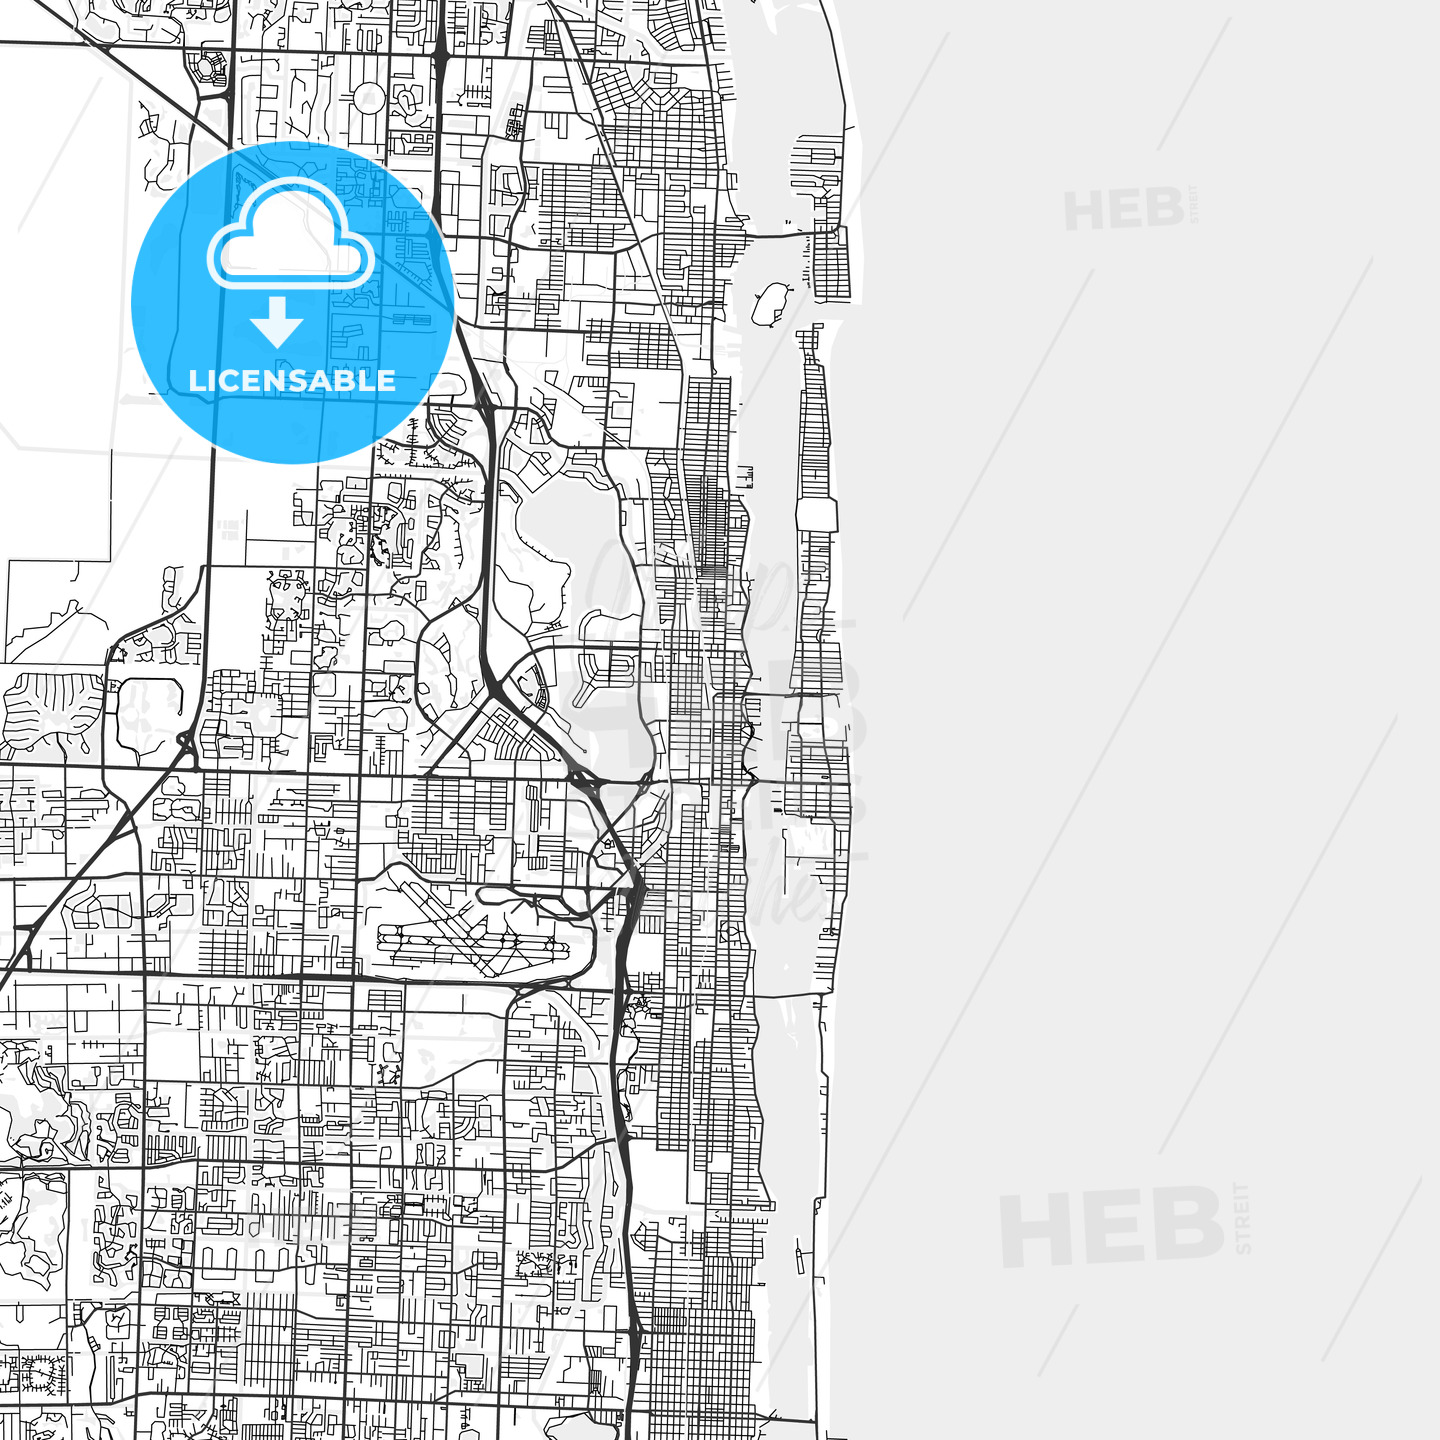 West Palm Beach, Florida - Area Map - Light Map Of High Beach on map of tv show, map of historical sites, map of main highway, map of stage, map of coast, map of border, map of dhahran hills, map of ferry, map of florida, map of seaport, map of thanksgiving, map of tiki, map of salt mine, map of surrounding, map of seabreeze, map of fat, map of minnewaukan, map of cape may county zoo, map of cartoon, map of scuba,